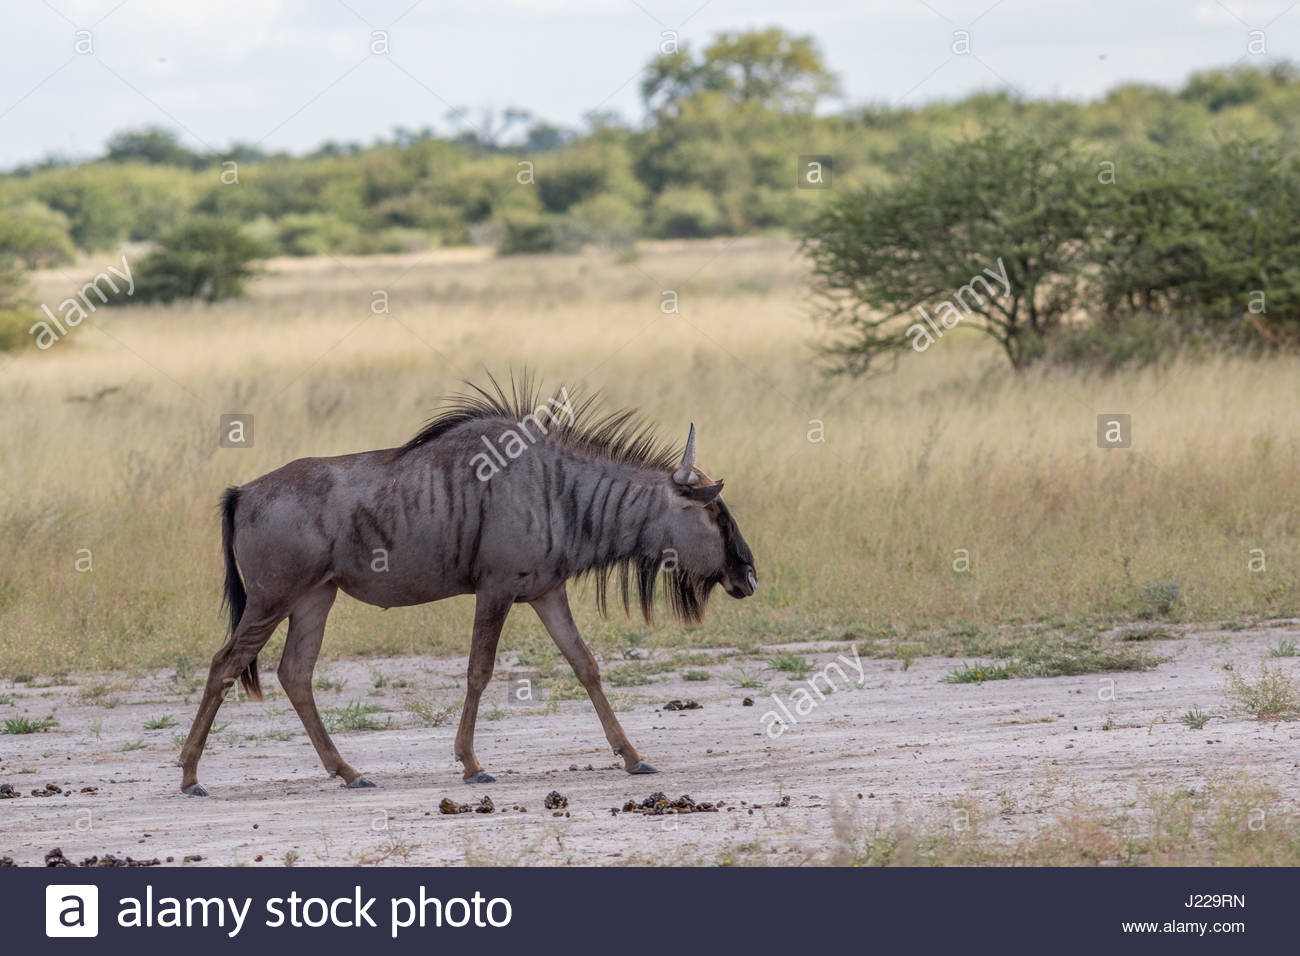 A Wildebeest (Gnu) occupies the bush road in the Nxai Pan National Park, Botswana - Stock Image